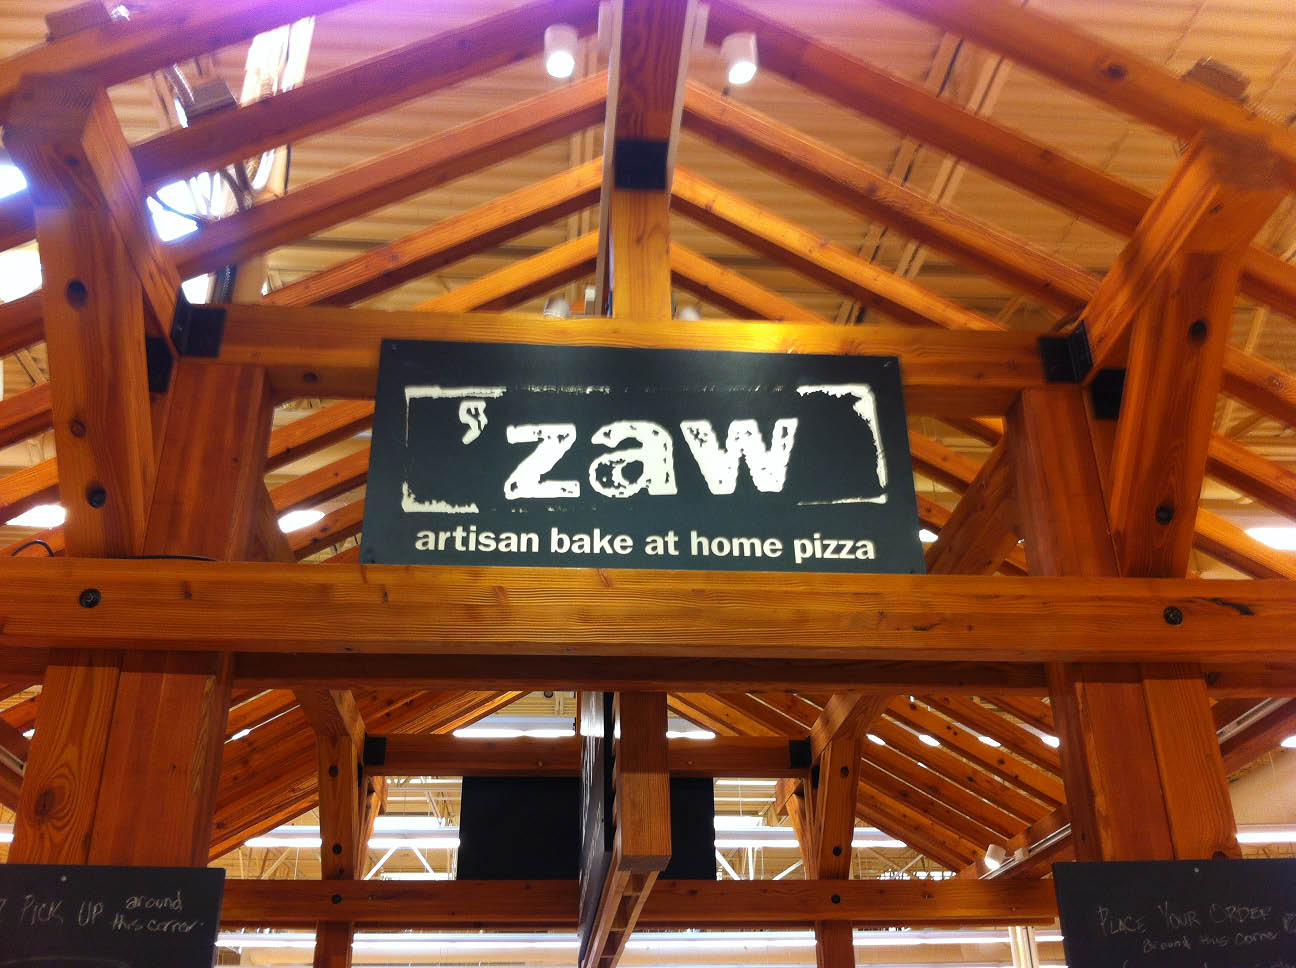 Zaw Artisan Bake at home pizza - nine locations throughout the Puget Sound and Greater Seattle area